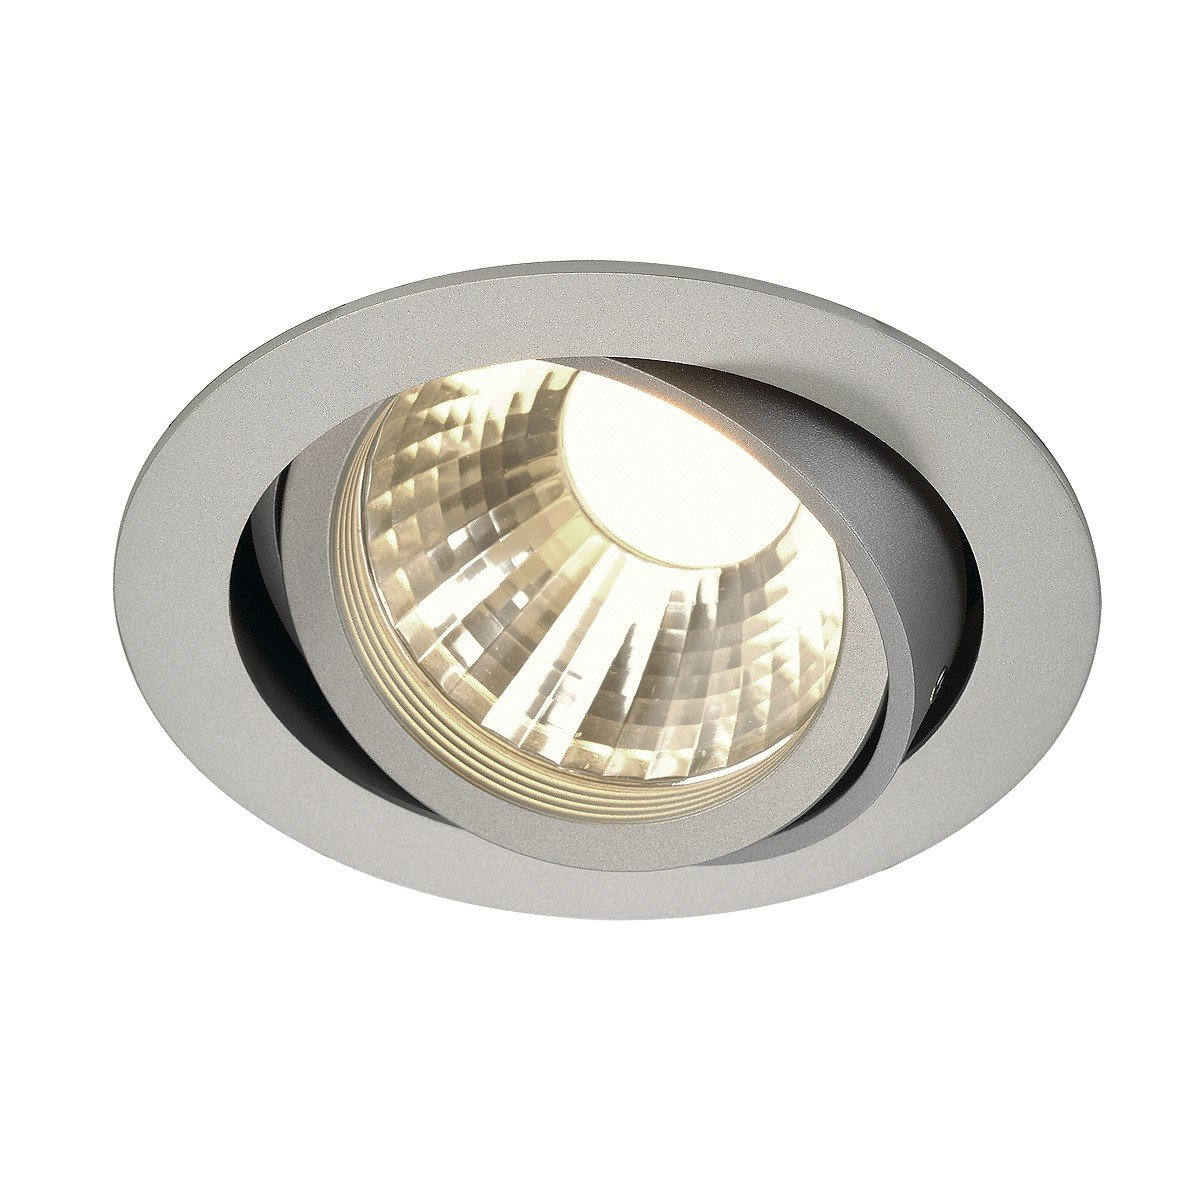 SLV New Tria LED Disk Downlight, Rund, 2700 K, 35 Grad, silbergrau 113584